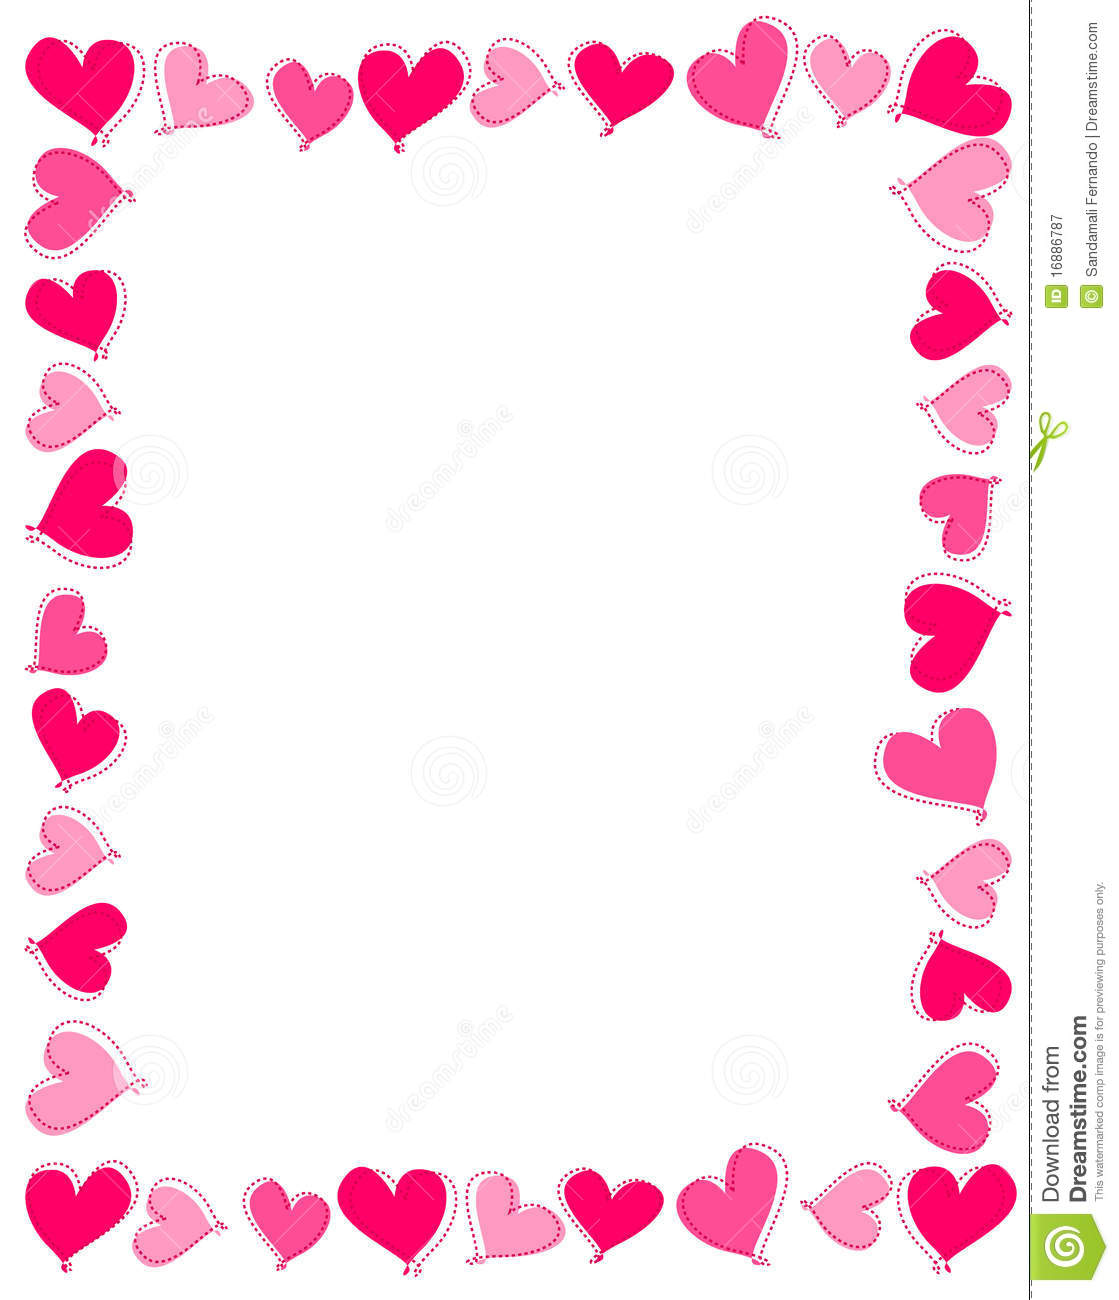 Pink Hearts Border Royalty Free Stock Photography - Image  16886787Heart Border Horizontal